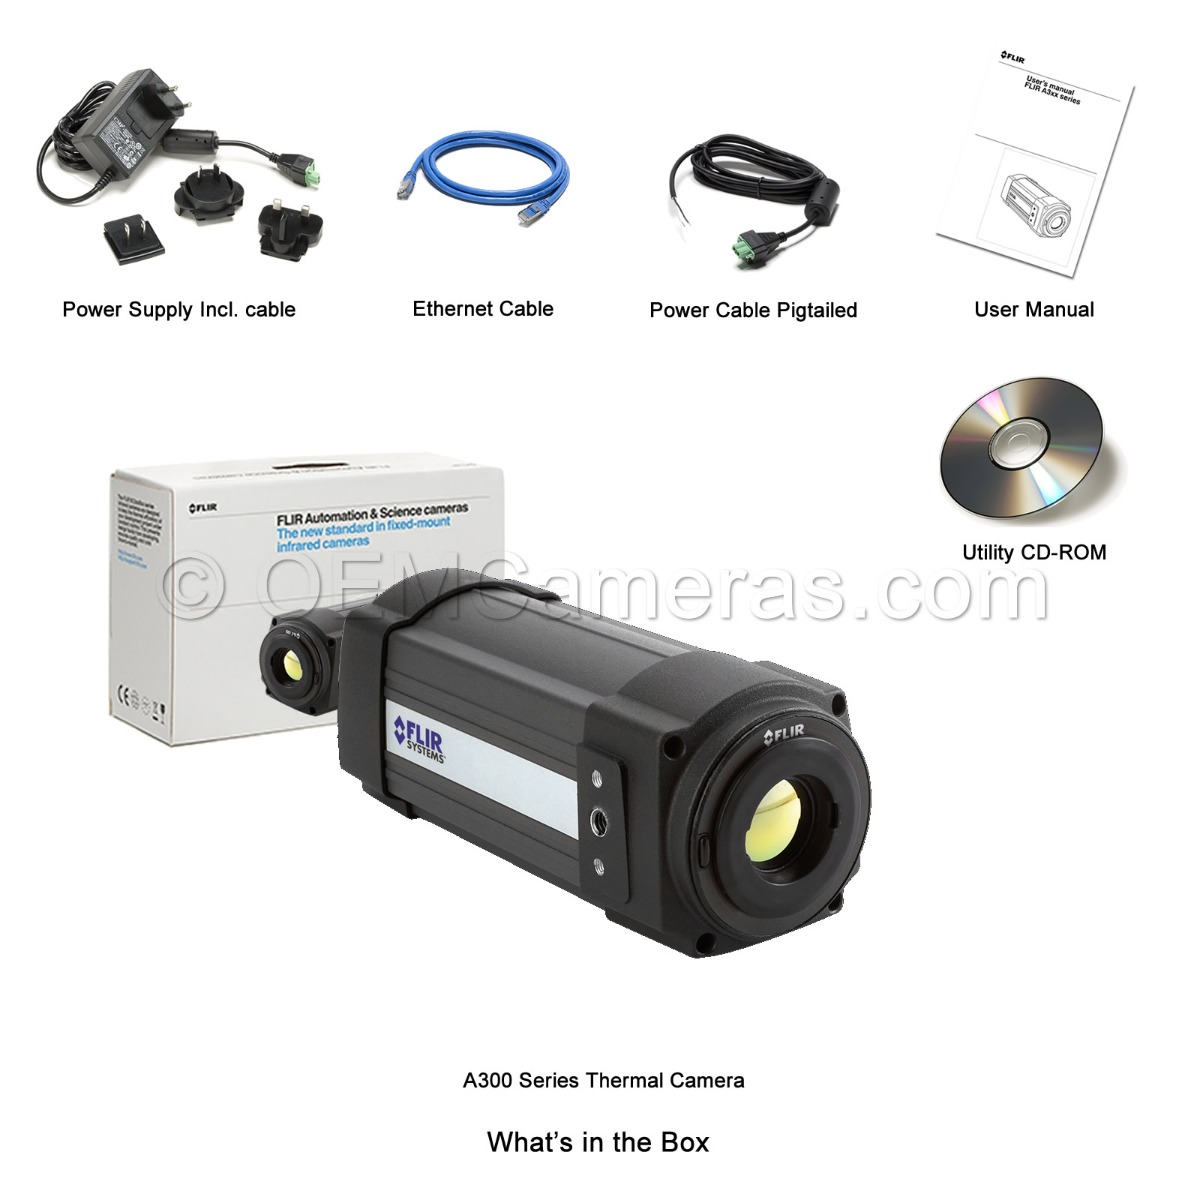 FLIR A300 Series Thermal Camera What's in the Box